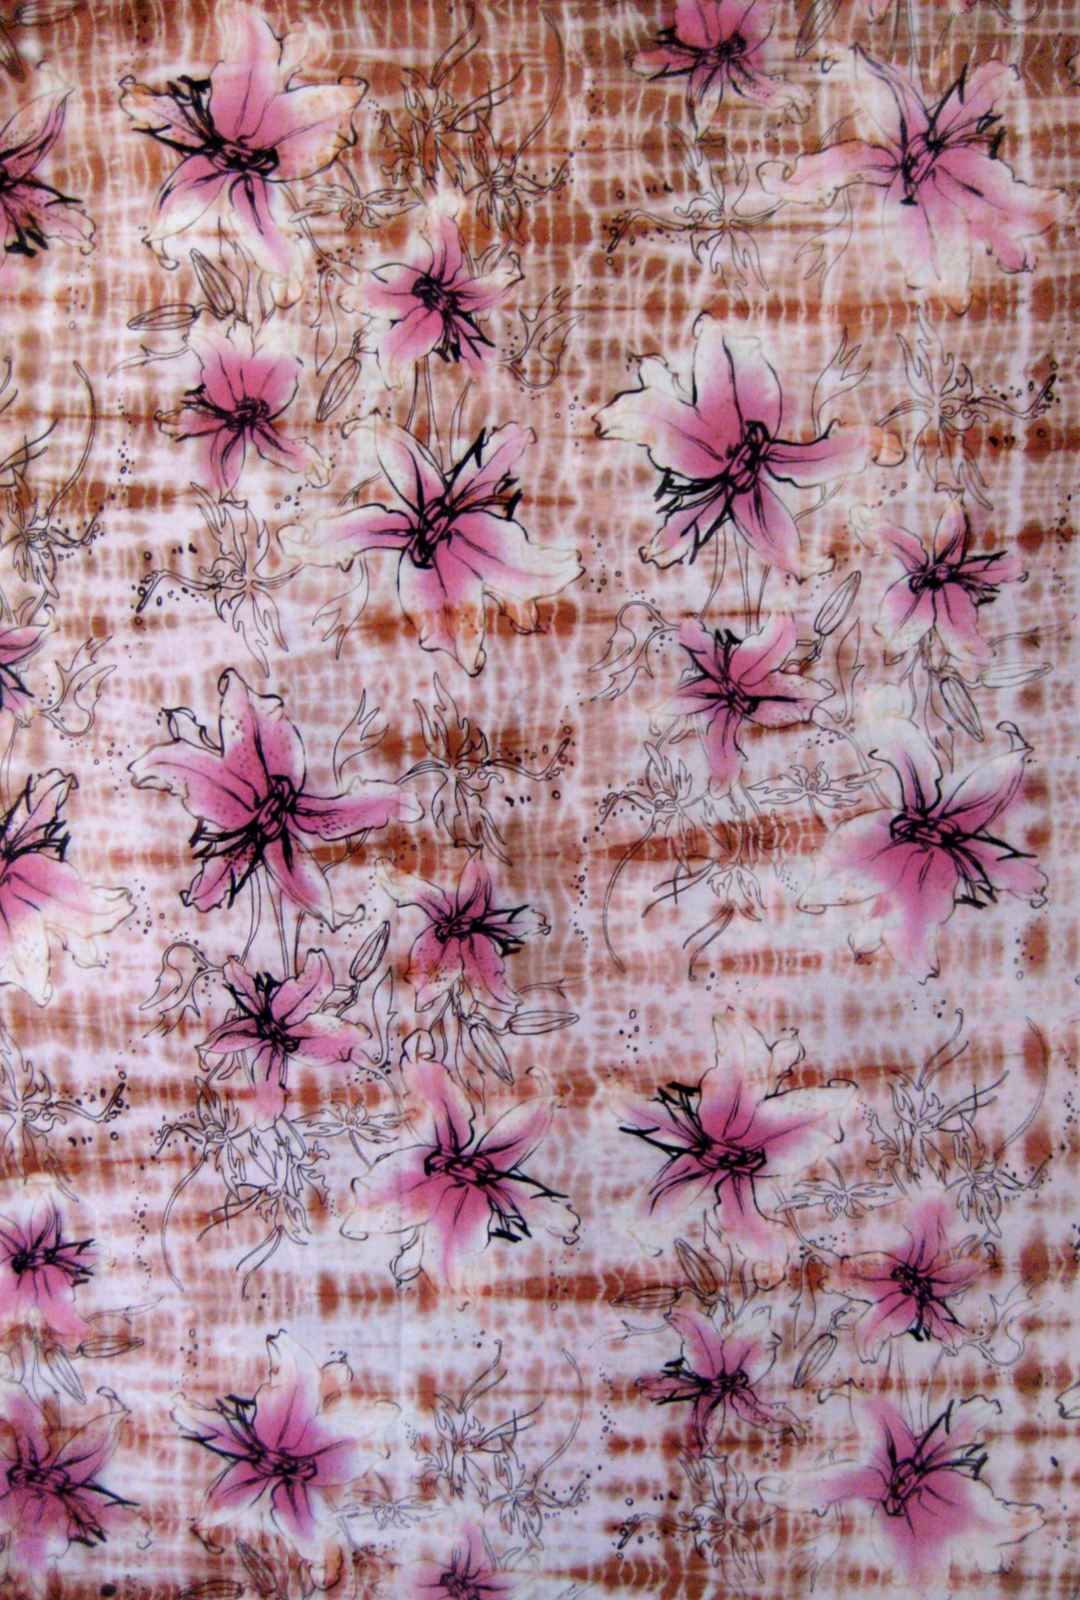 'Pacific Pallate', Shibori, Batik, and multiple dye processed silk, 2006